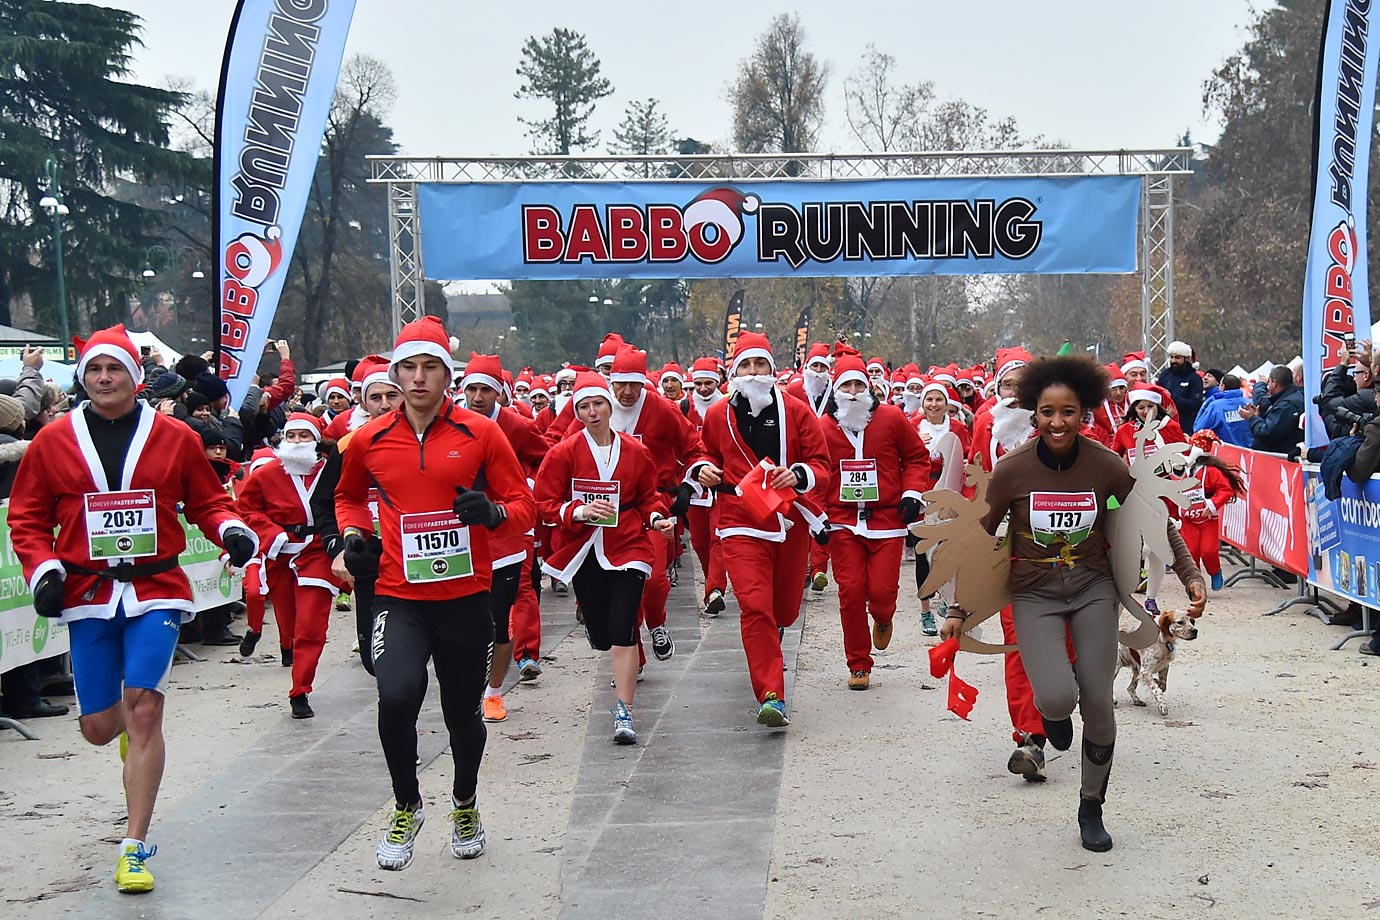 Contestants wear costumes as they take part in a Santa Claus-themed race in downtown Milan.